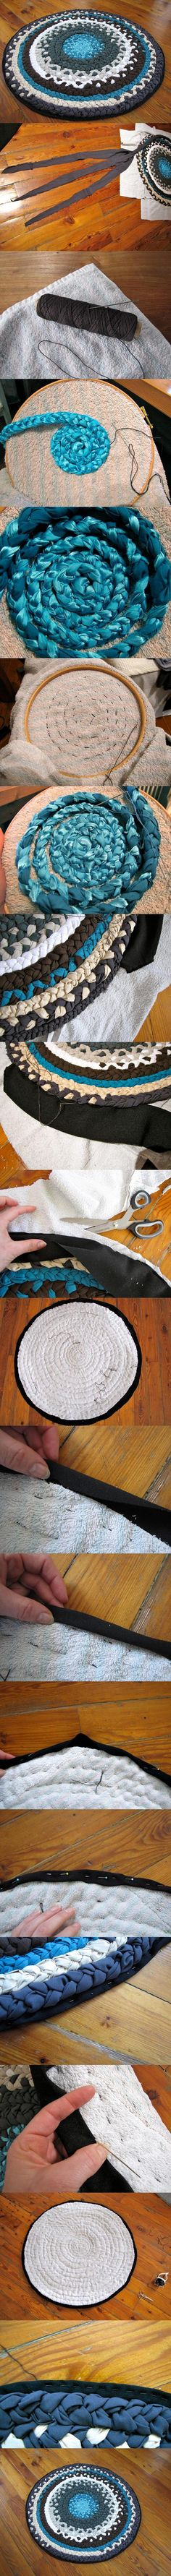 DIY Braided Fabric Rug